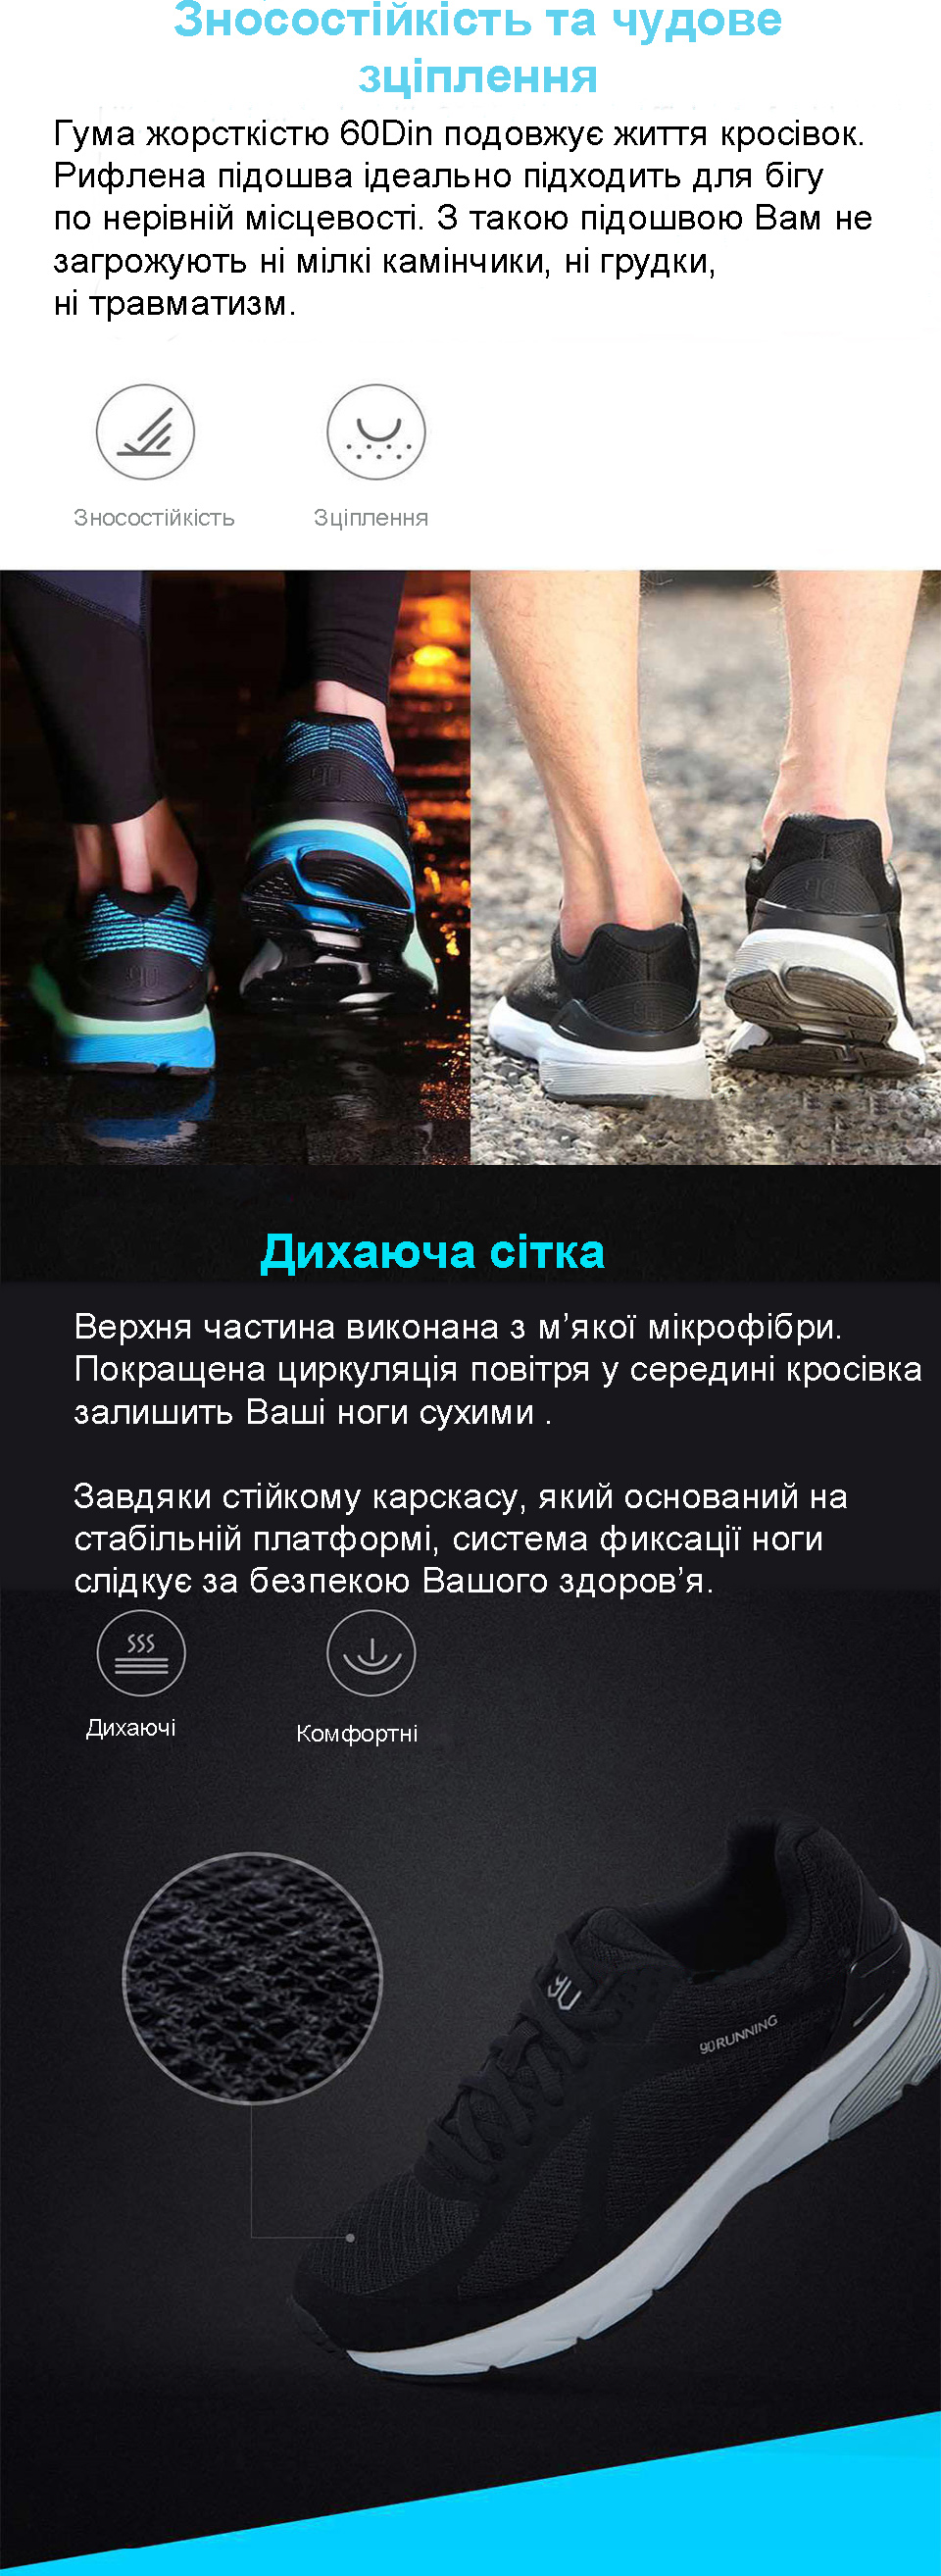 Кросівки RunMi 90 Points Ultra Smart Running Shoes підтримка